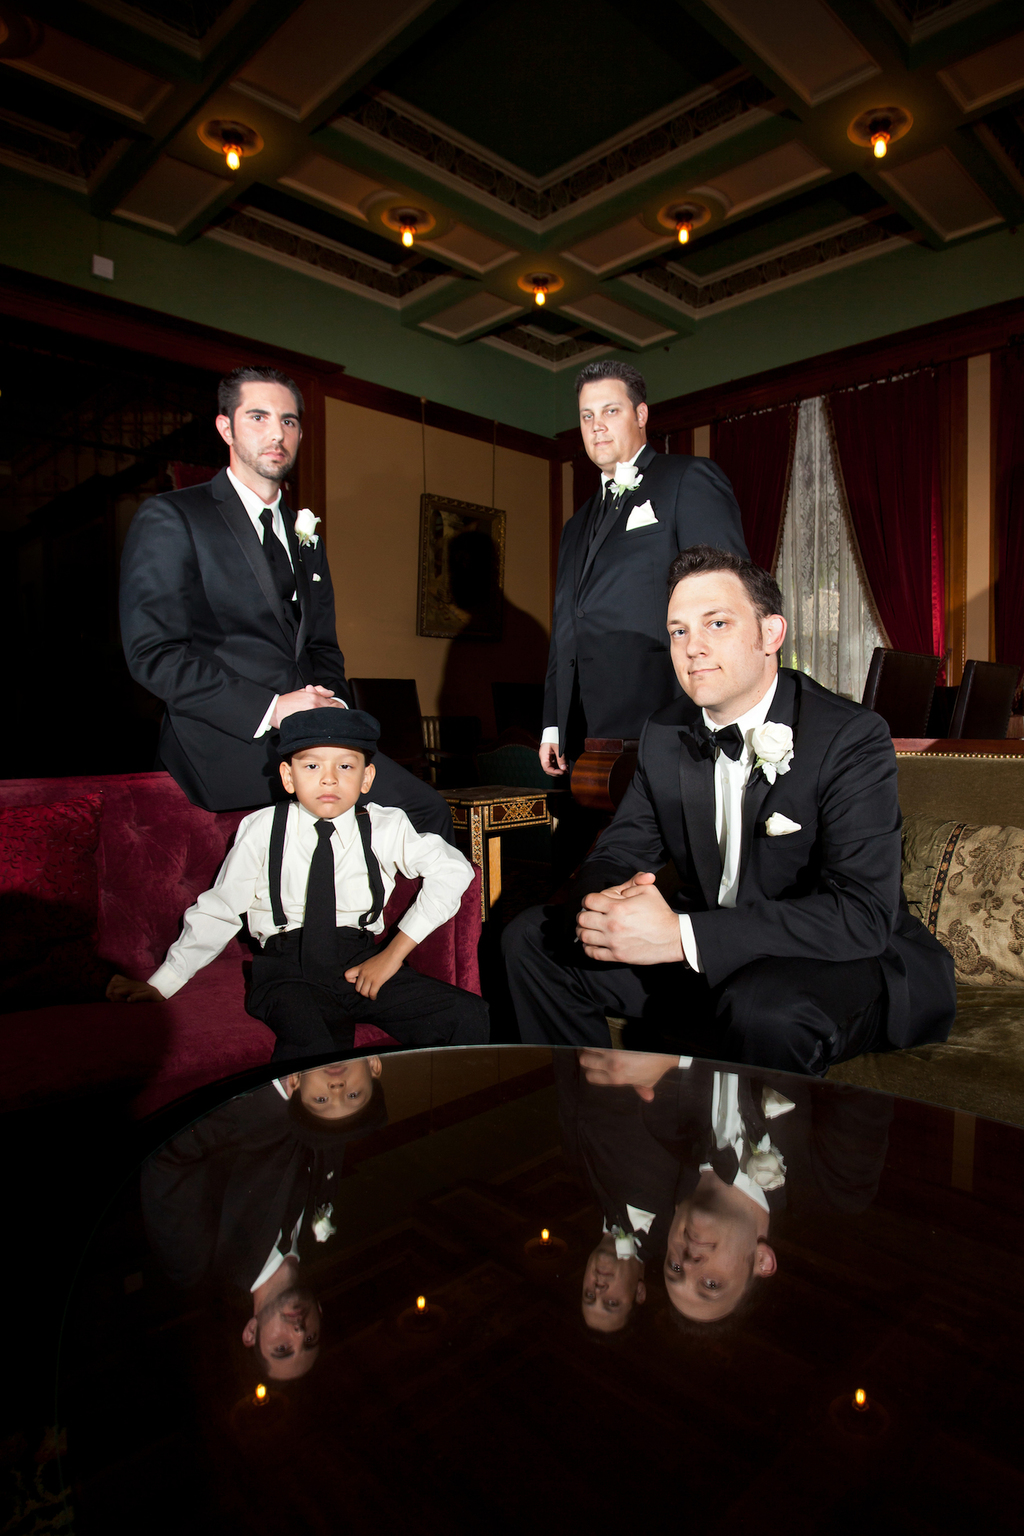 Classic-black-tie-groom-and-groomsmen-with-cute-ring-bearer.full